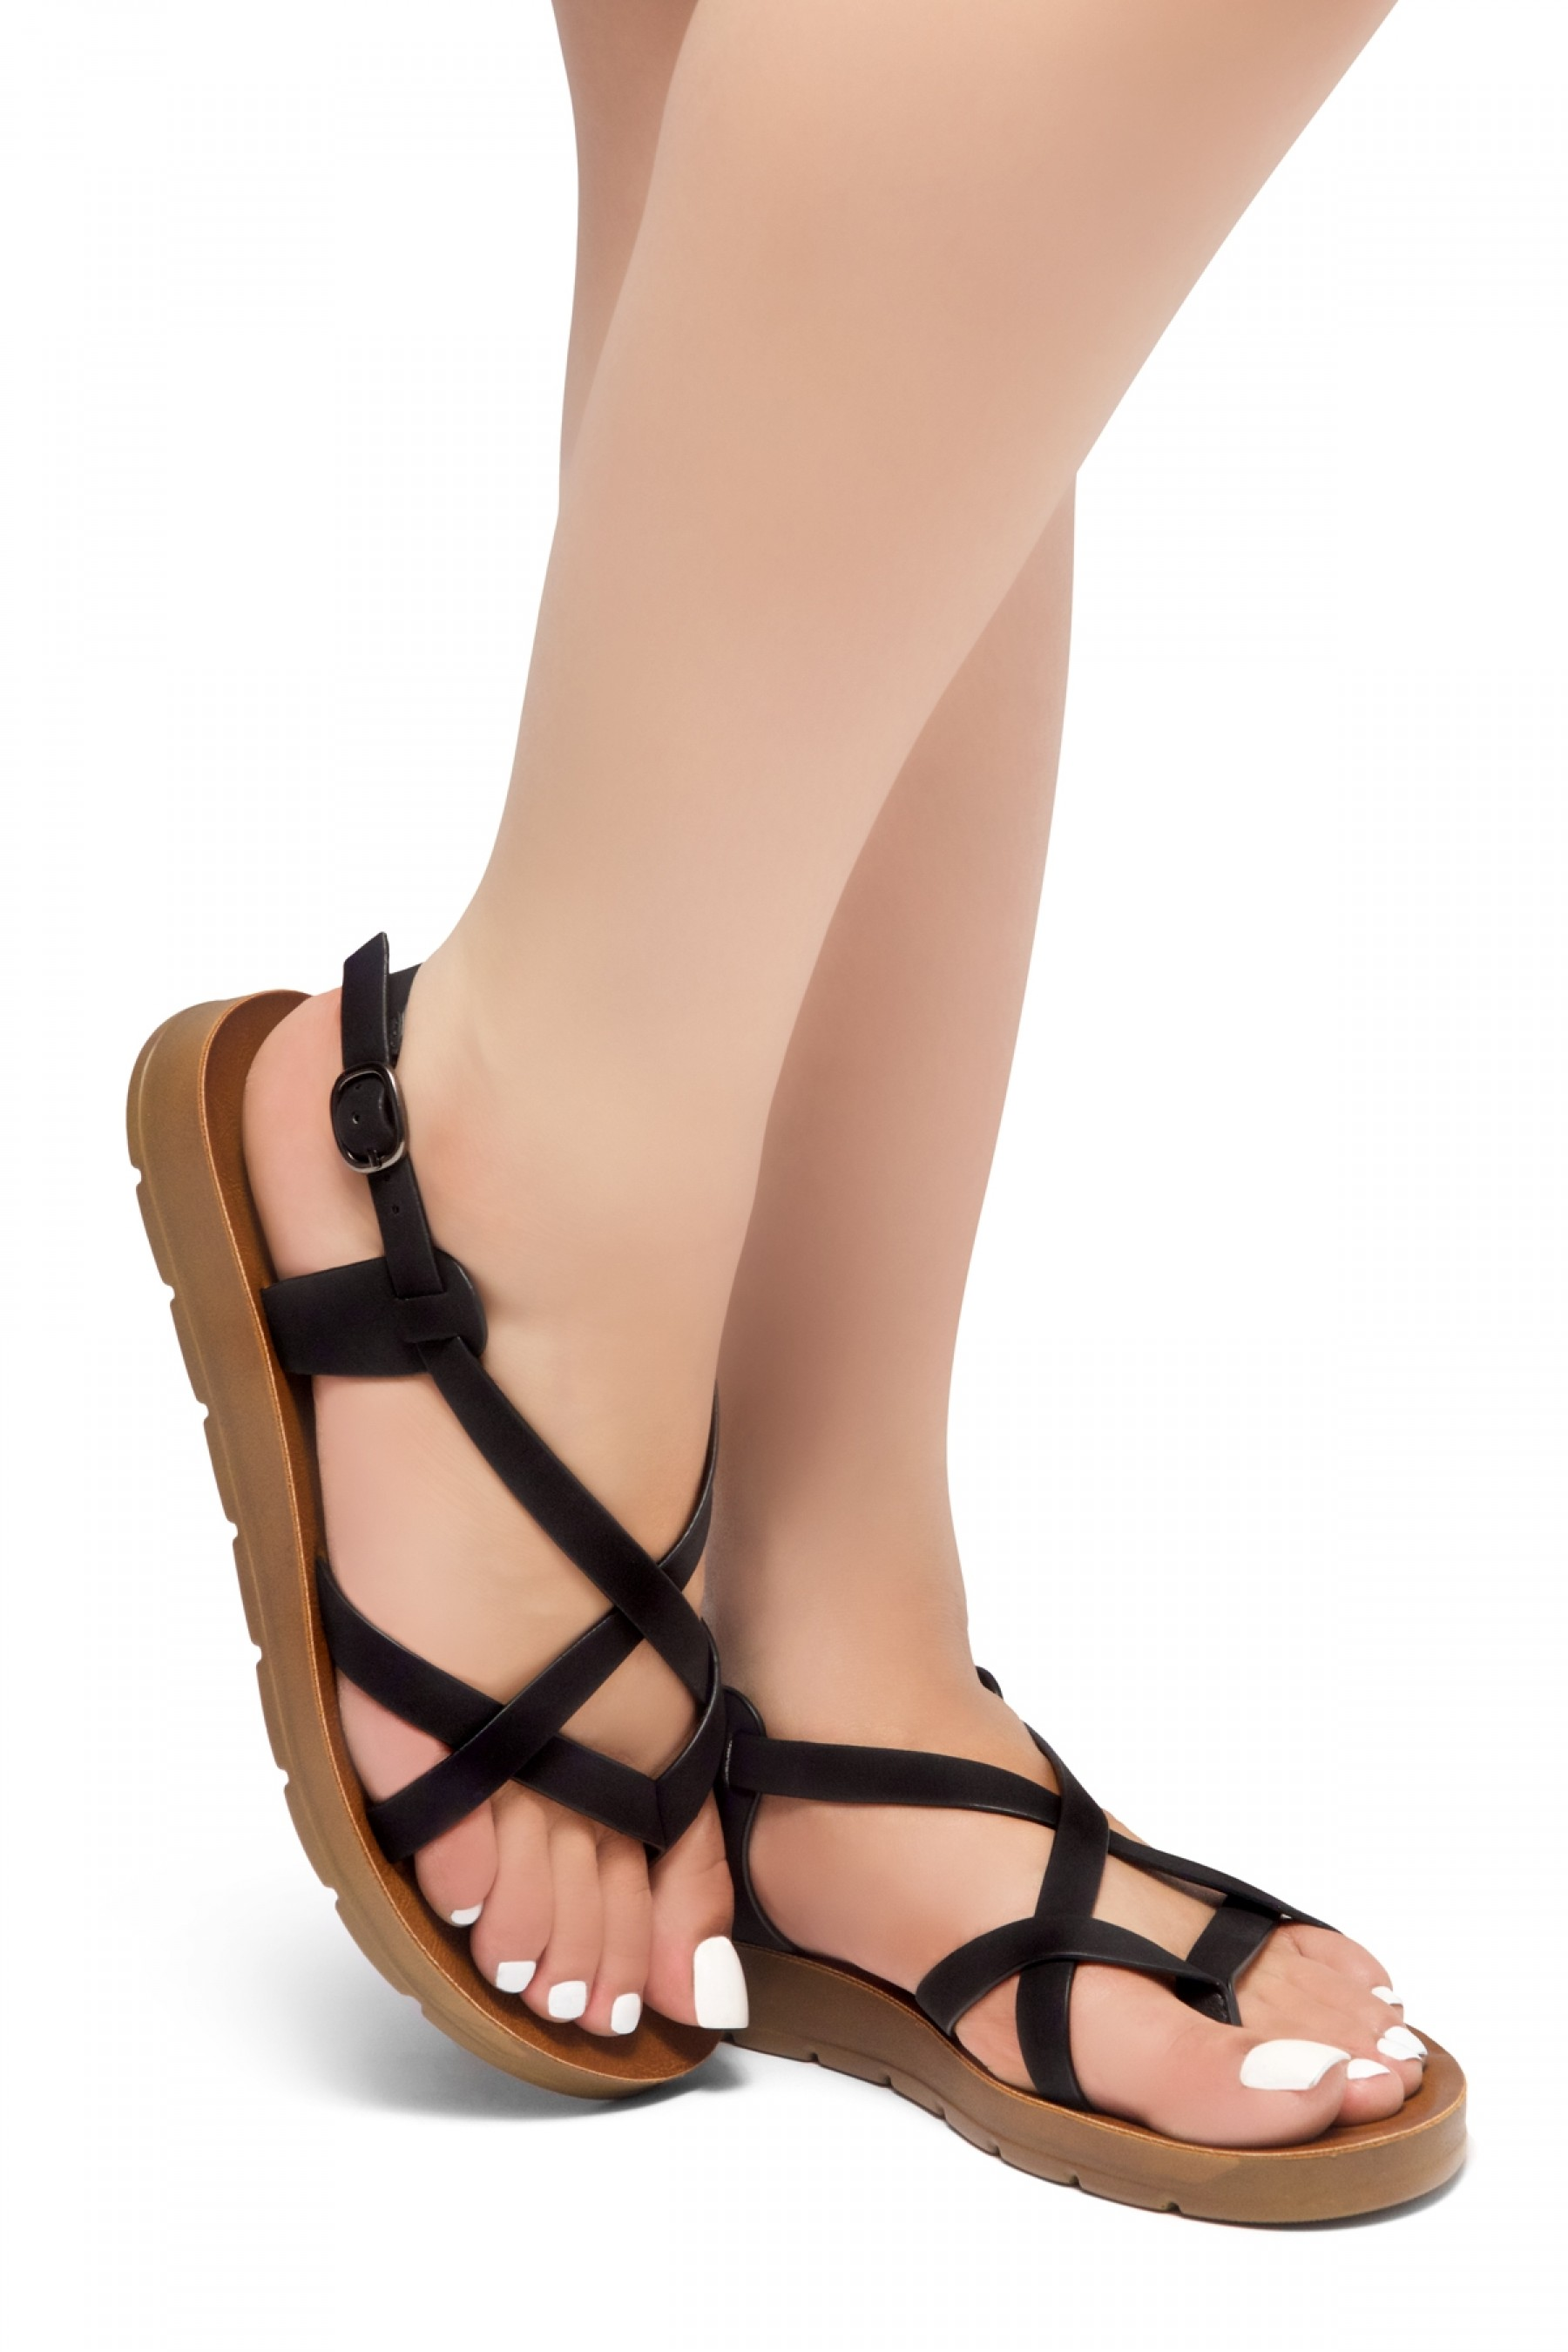 HerStyle SMOOTH MOVE- Flat Sandal with straps cross vamp(Black)